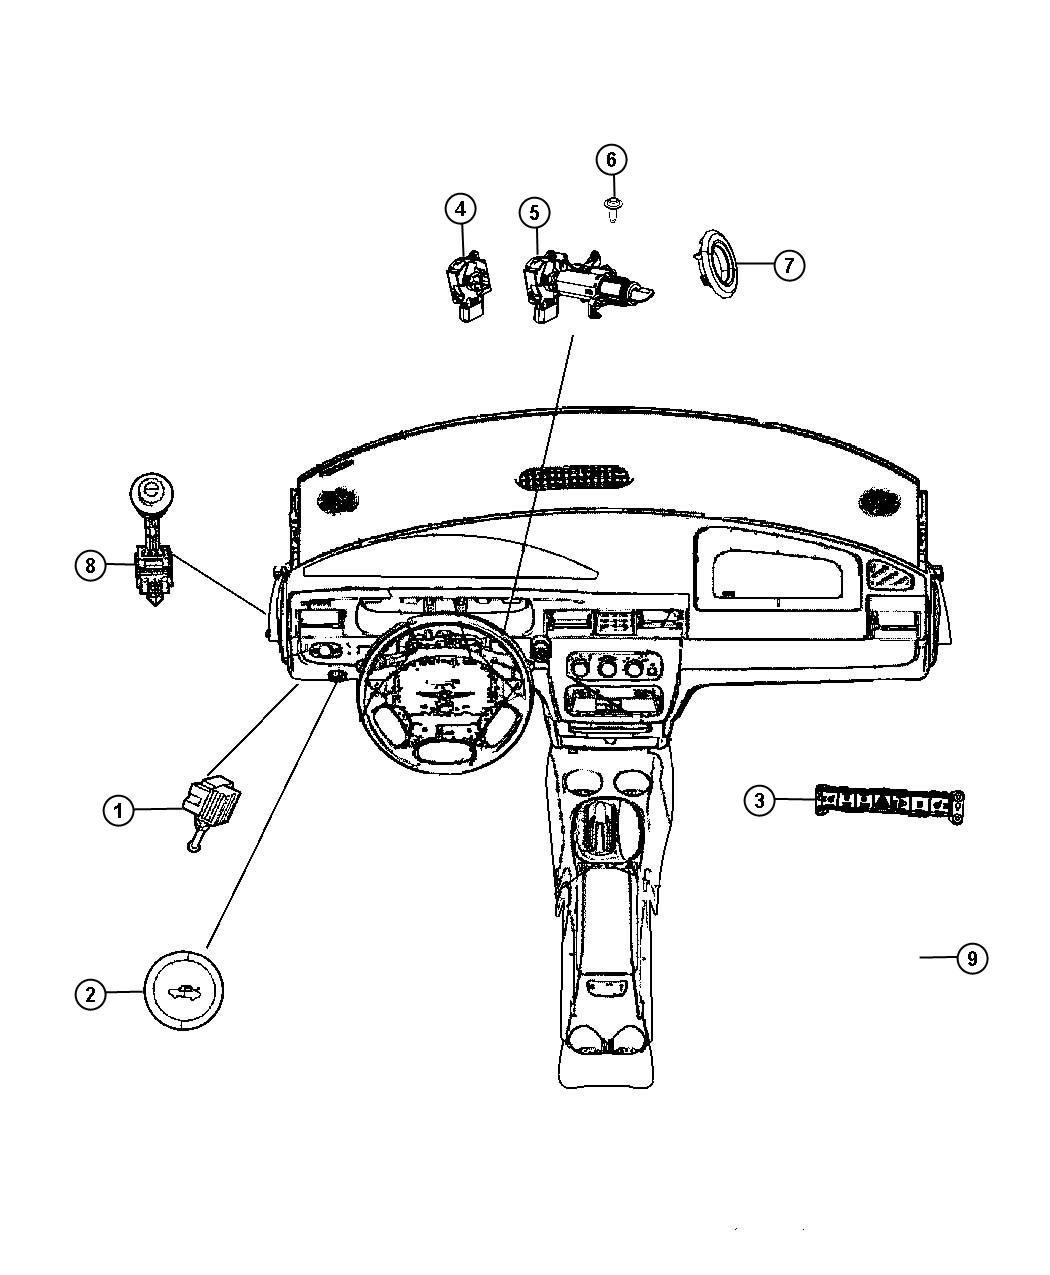 Chrysler Sebring Used For Switch And Lamp Glove Box